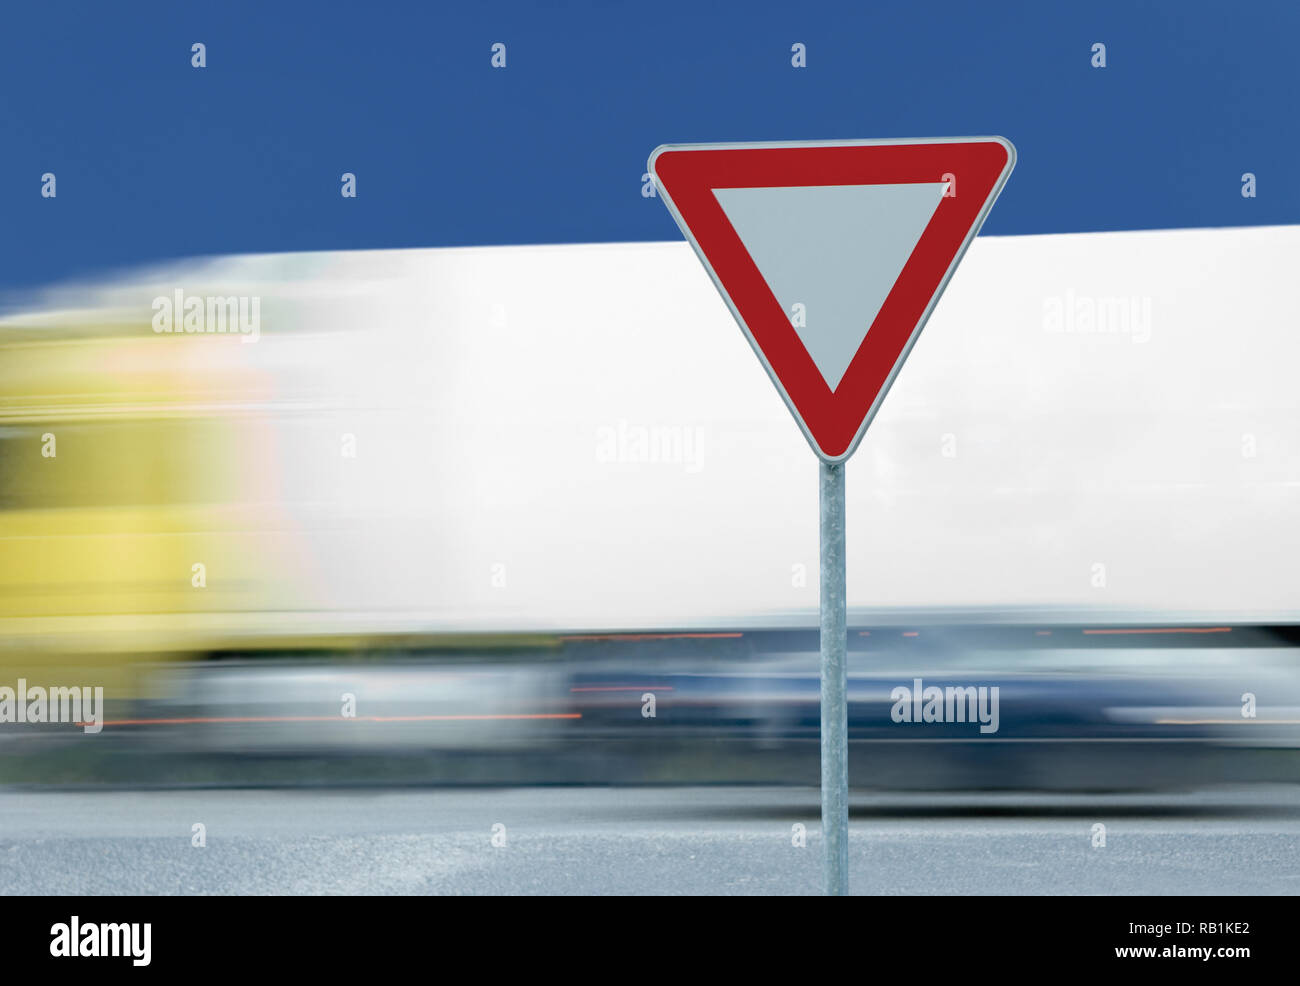 Give way yield road traffic sign, motion blurred white truck in the background, blue summer sky - Stock Image